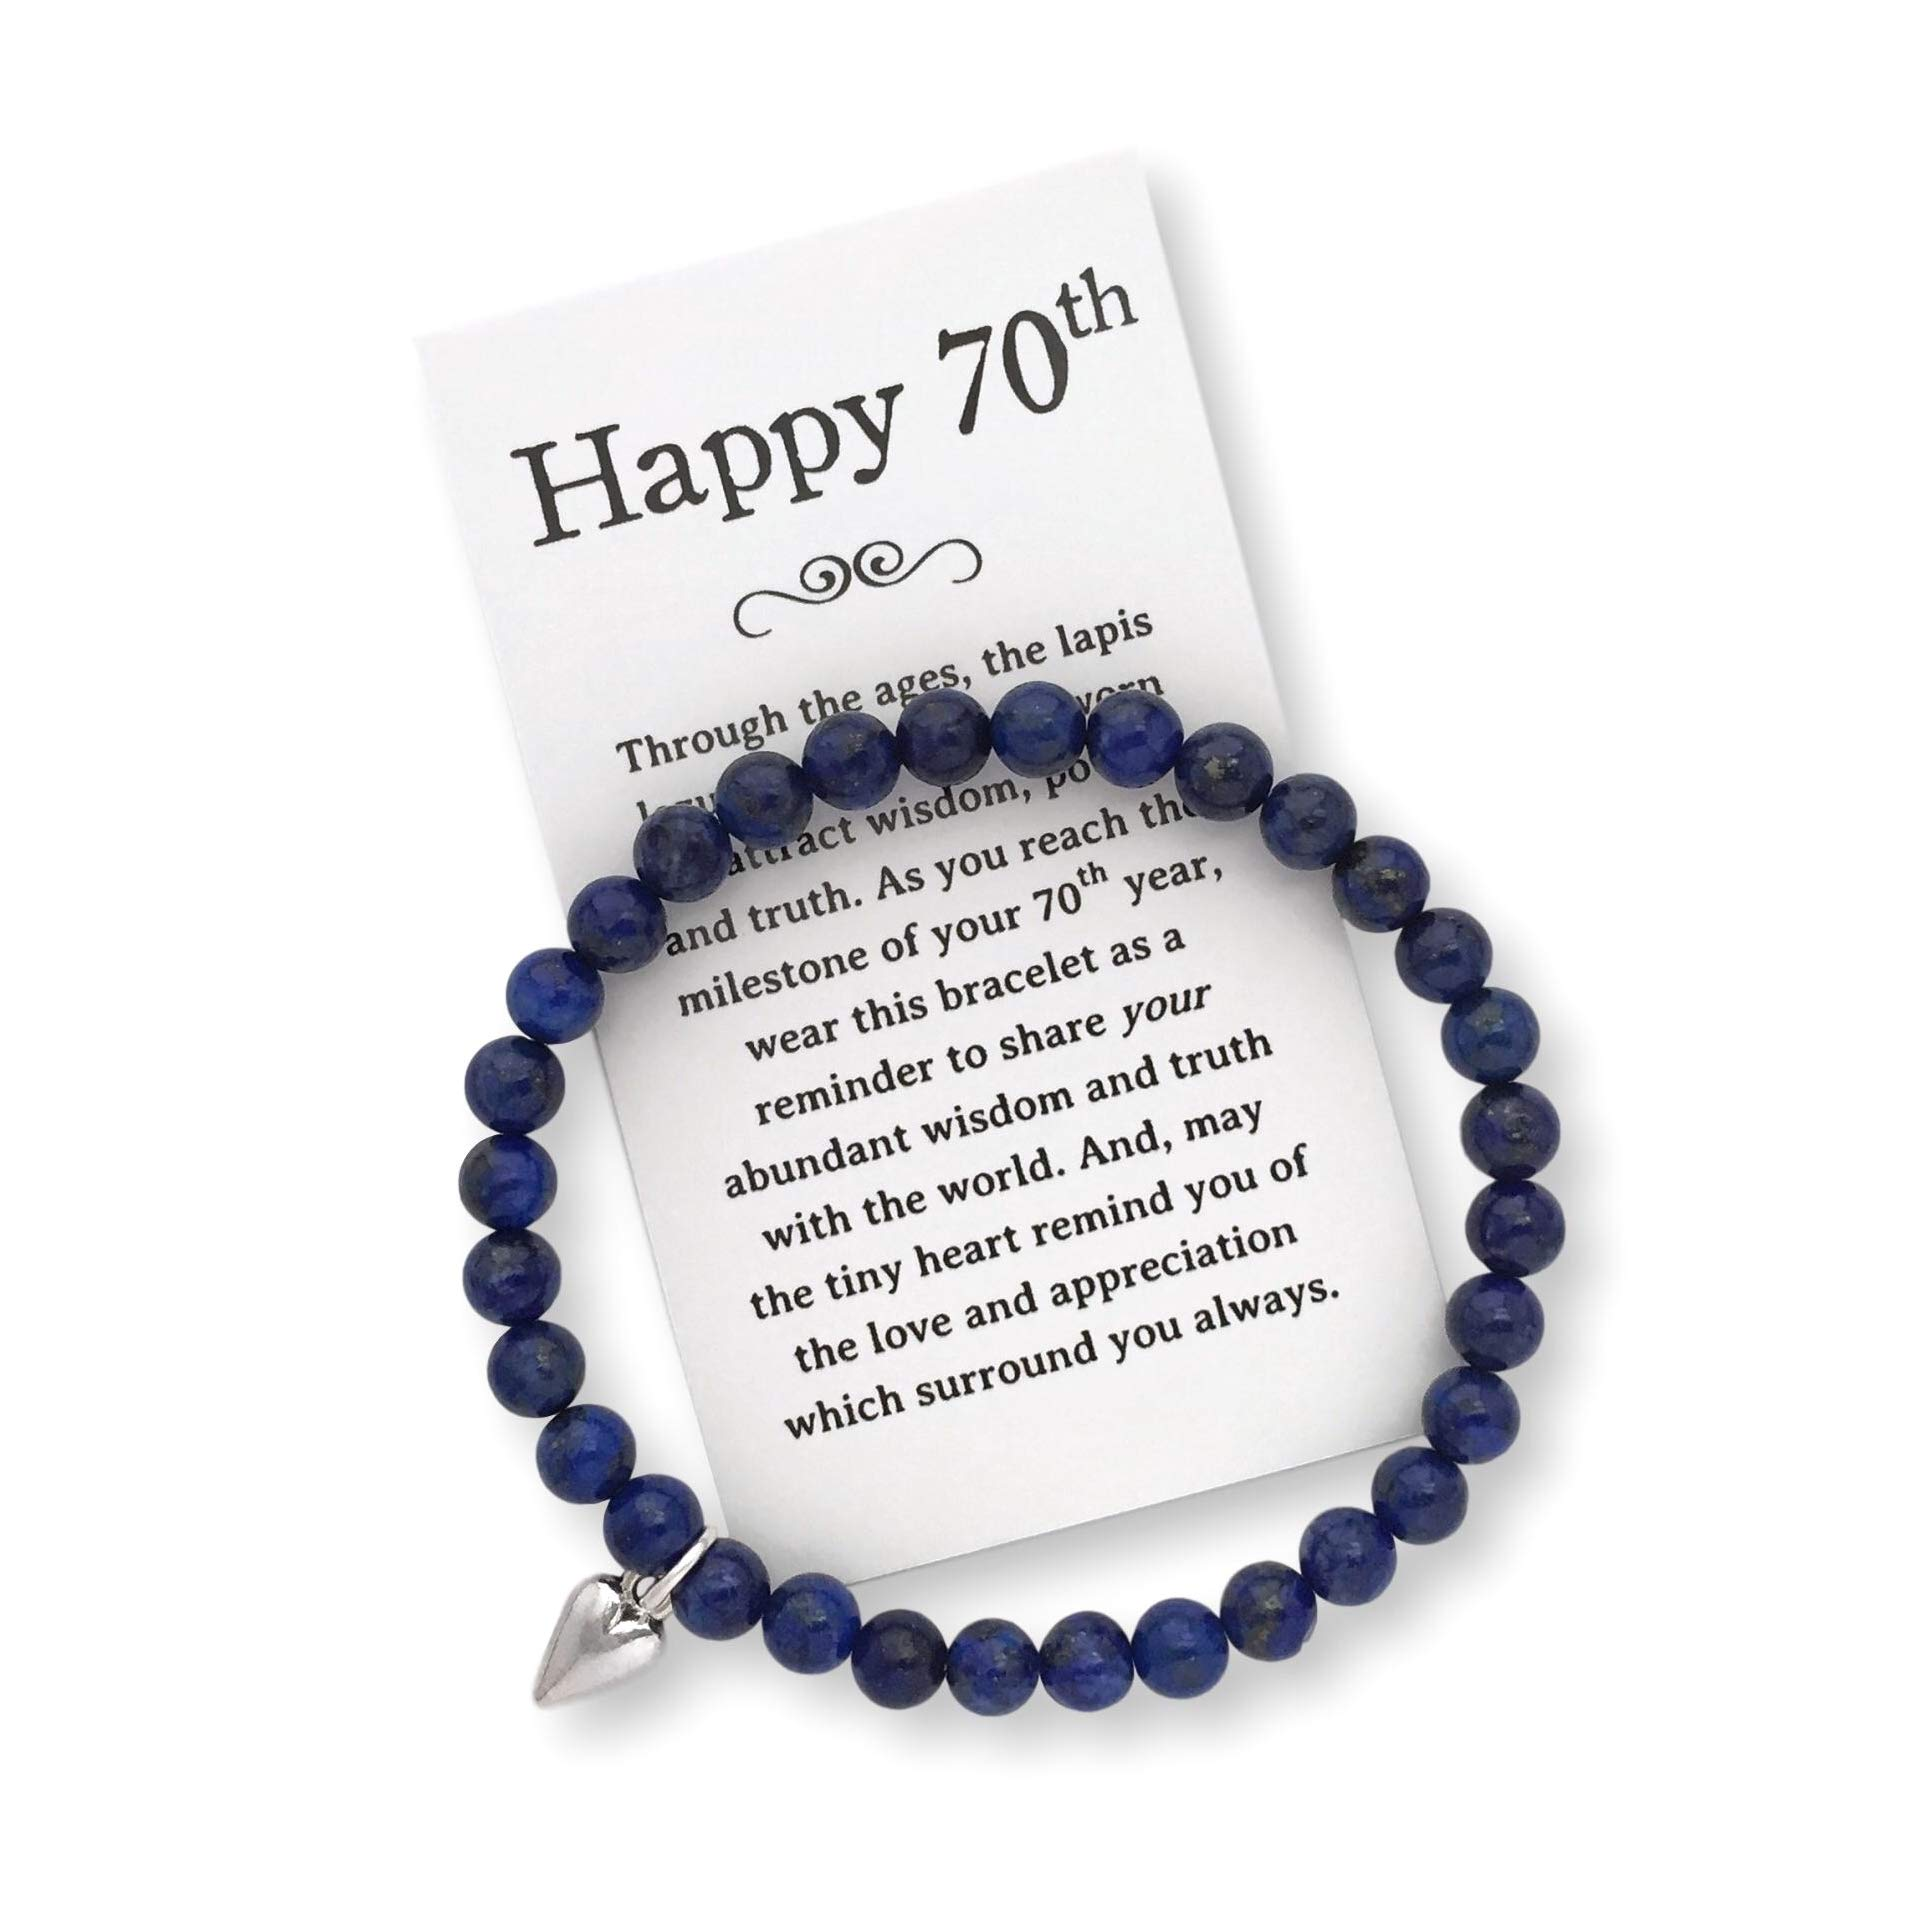 70th Birthday Gift for Women - 70th Jewelry Bracelet with Box, Bow and Card by Birthday Jewelry